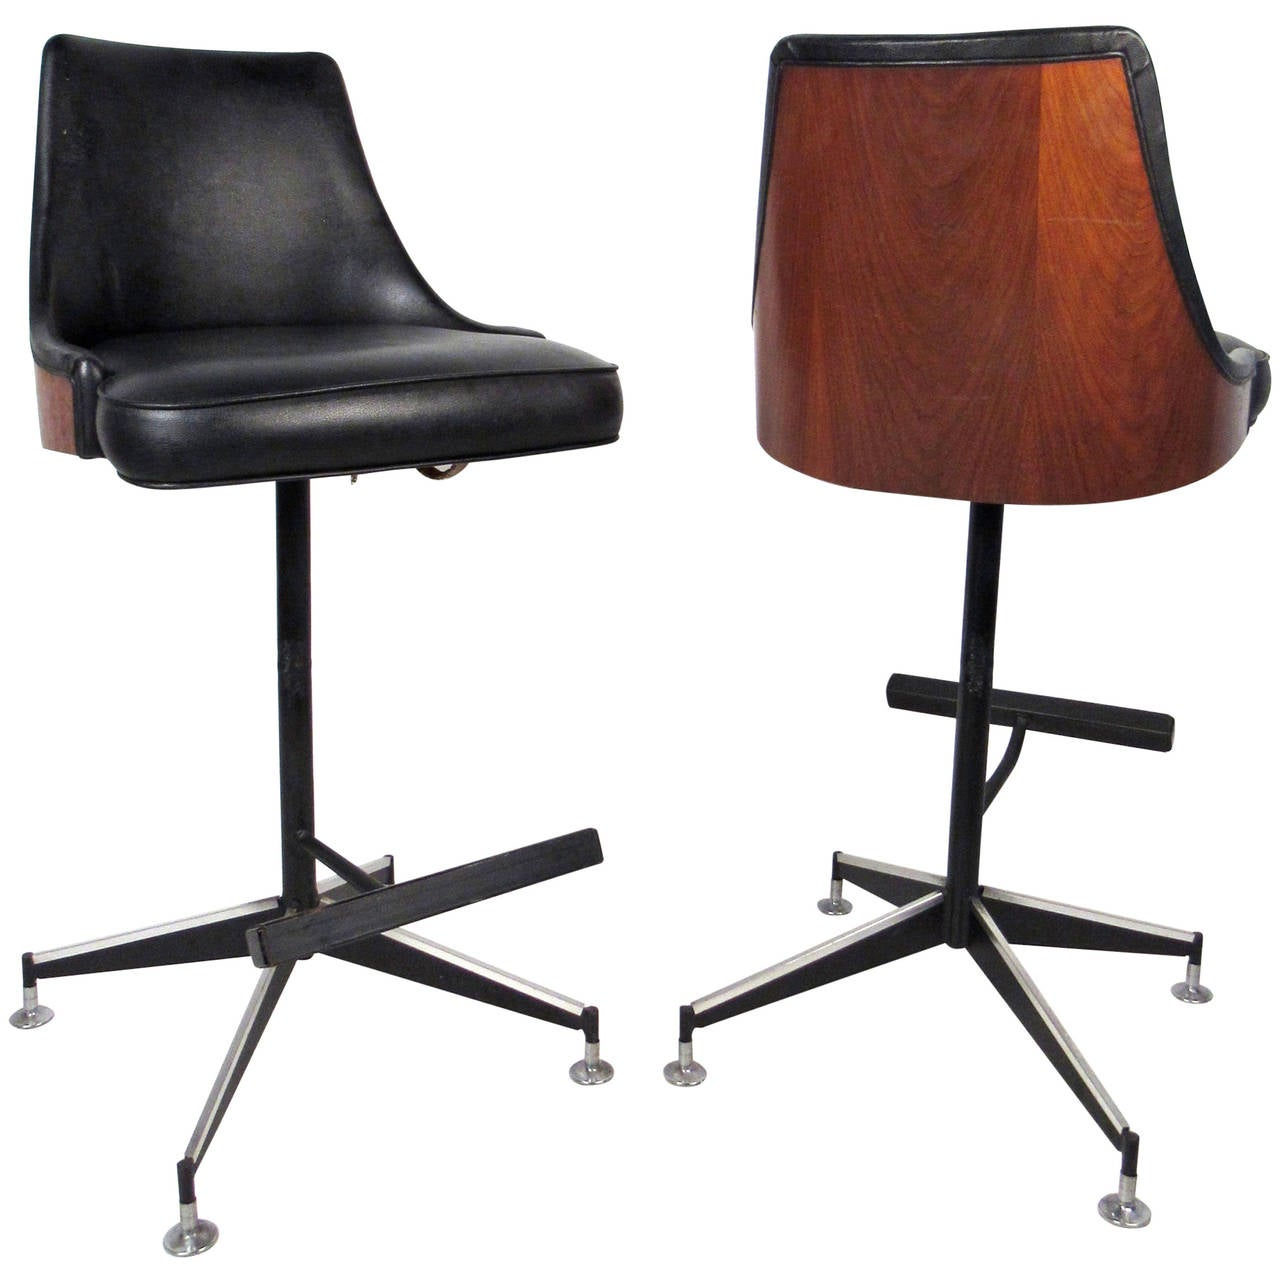 modern bar chairs chair covers and sash hire hertfordshire mid century stools at 1stdibs